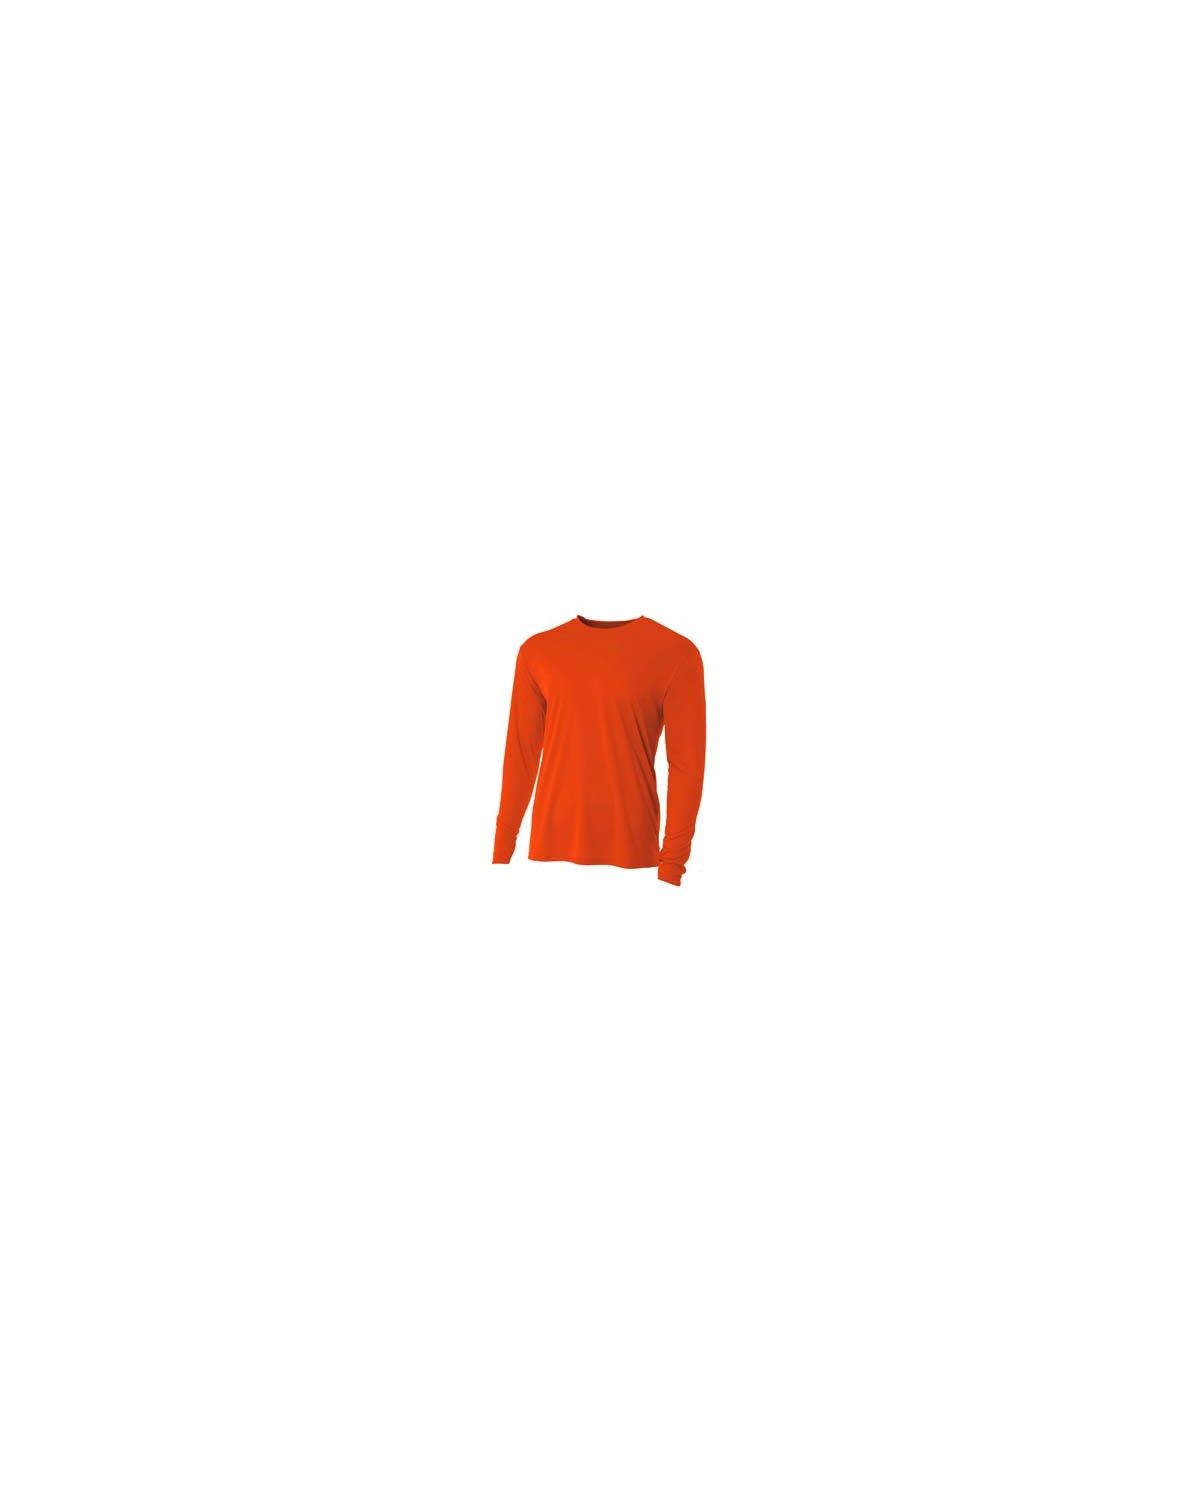 N3165 A4 ATHLETIC ORANGE